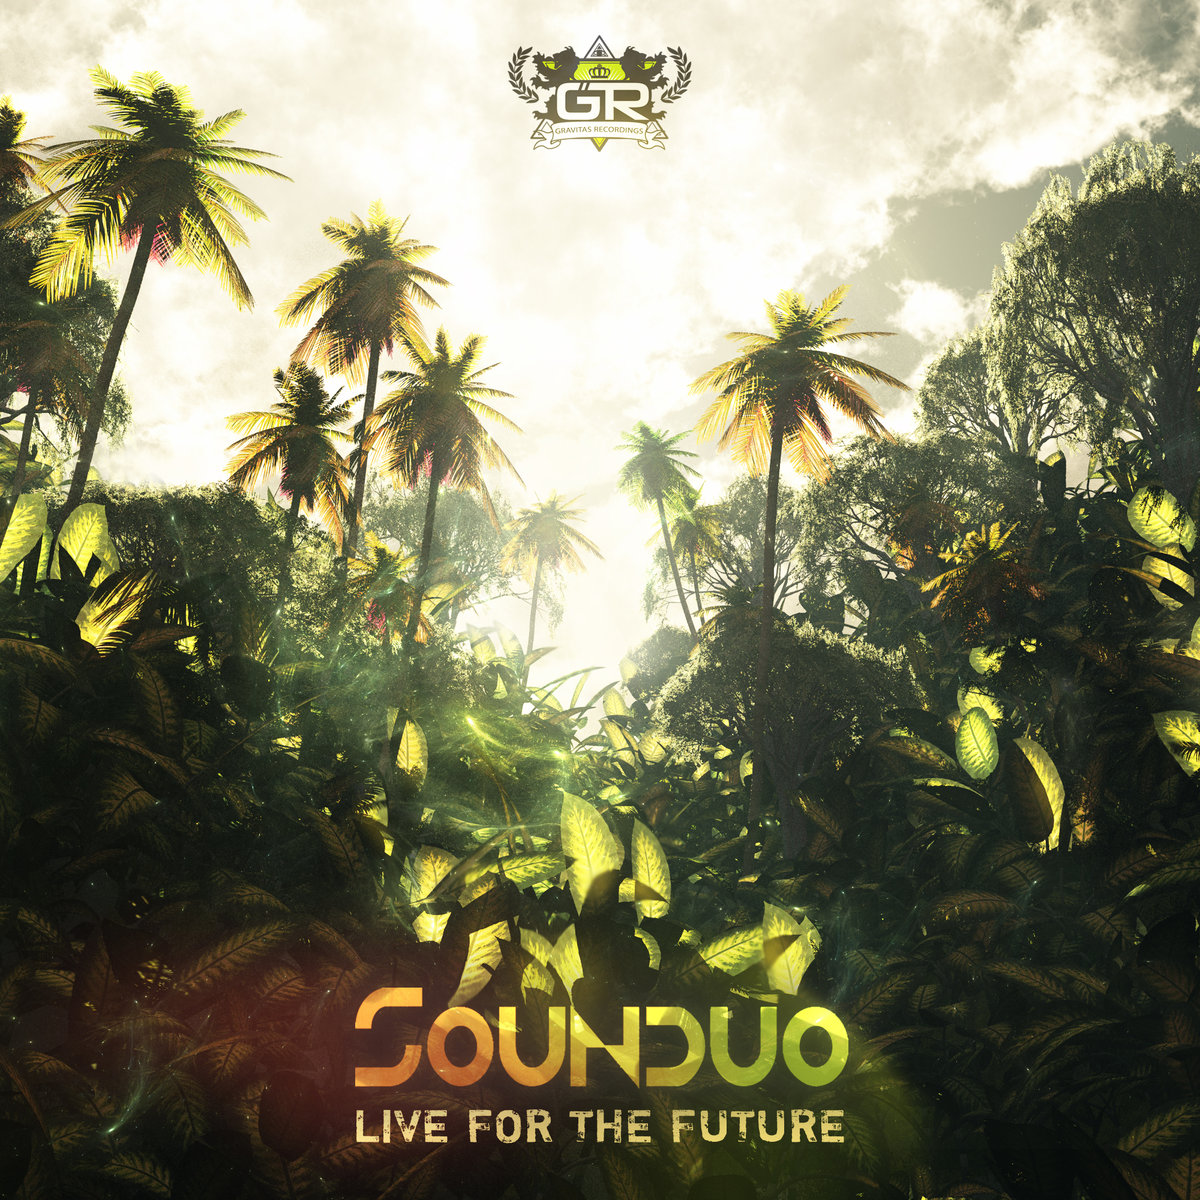 Sounduo - Live For The Future